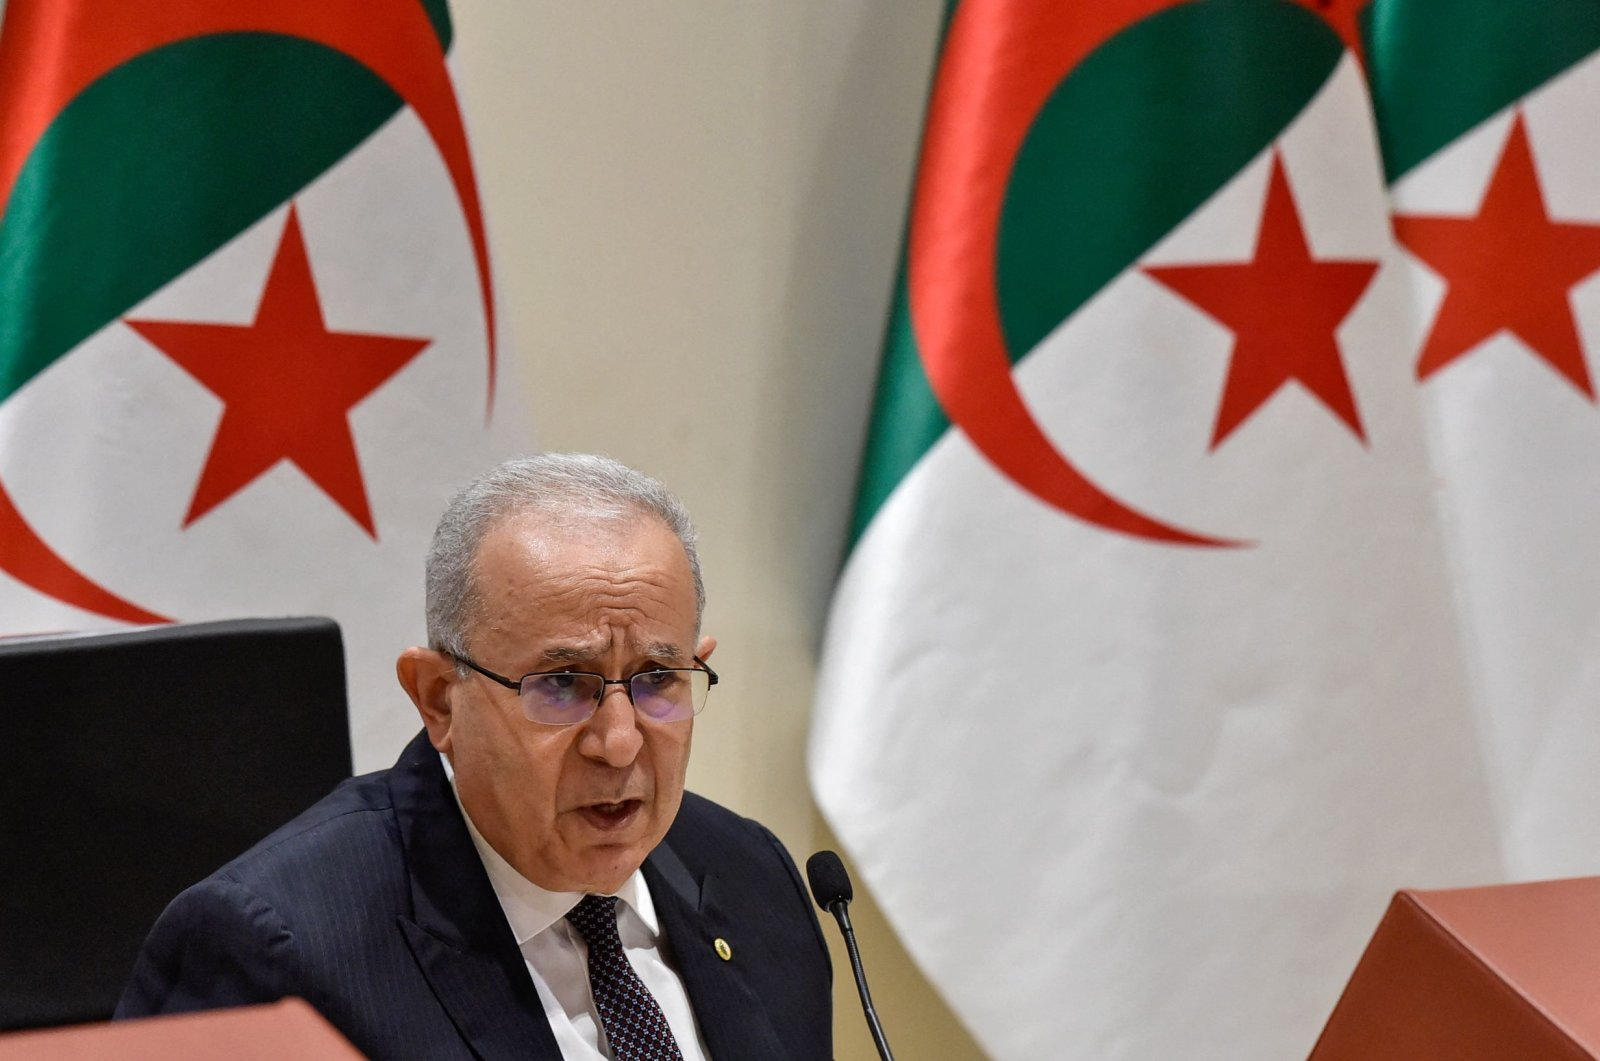 Algeria's Foreign Minister Ramtane Lamamra holds a press conference in the capital Algiers, Algeria, on Aug. 24, 2021. (Ryad Kramdi / AFP Photo)